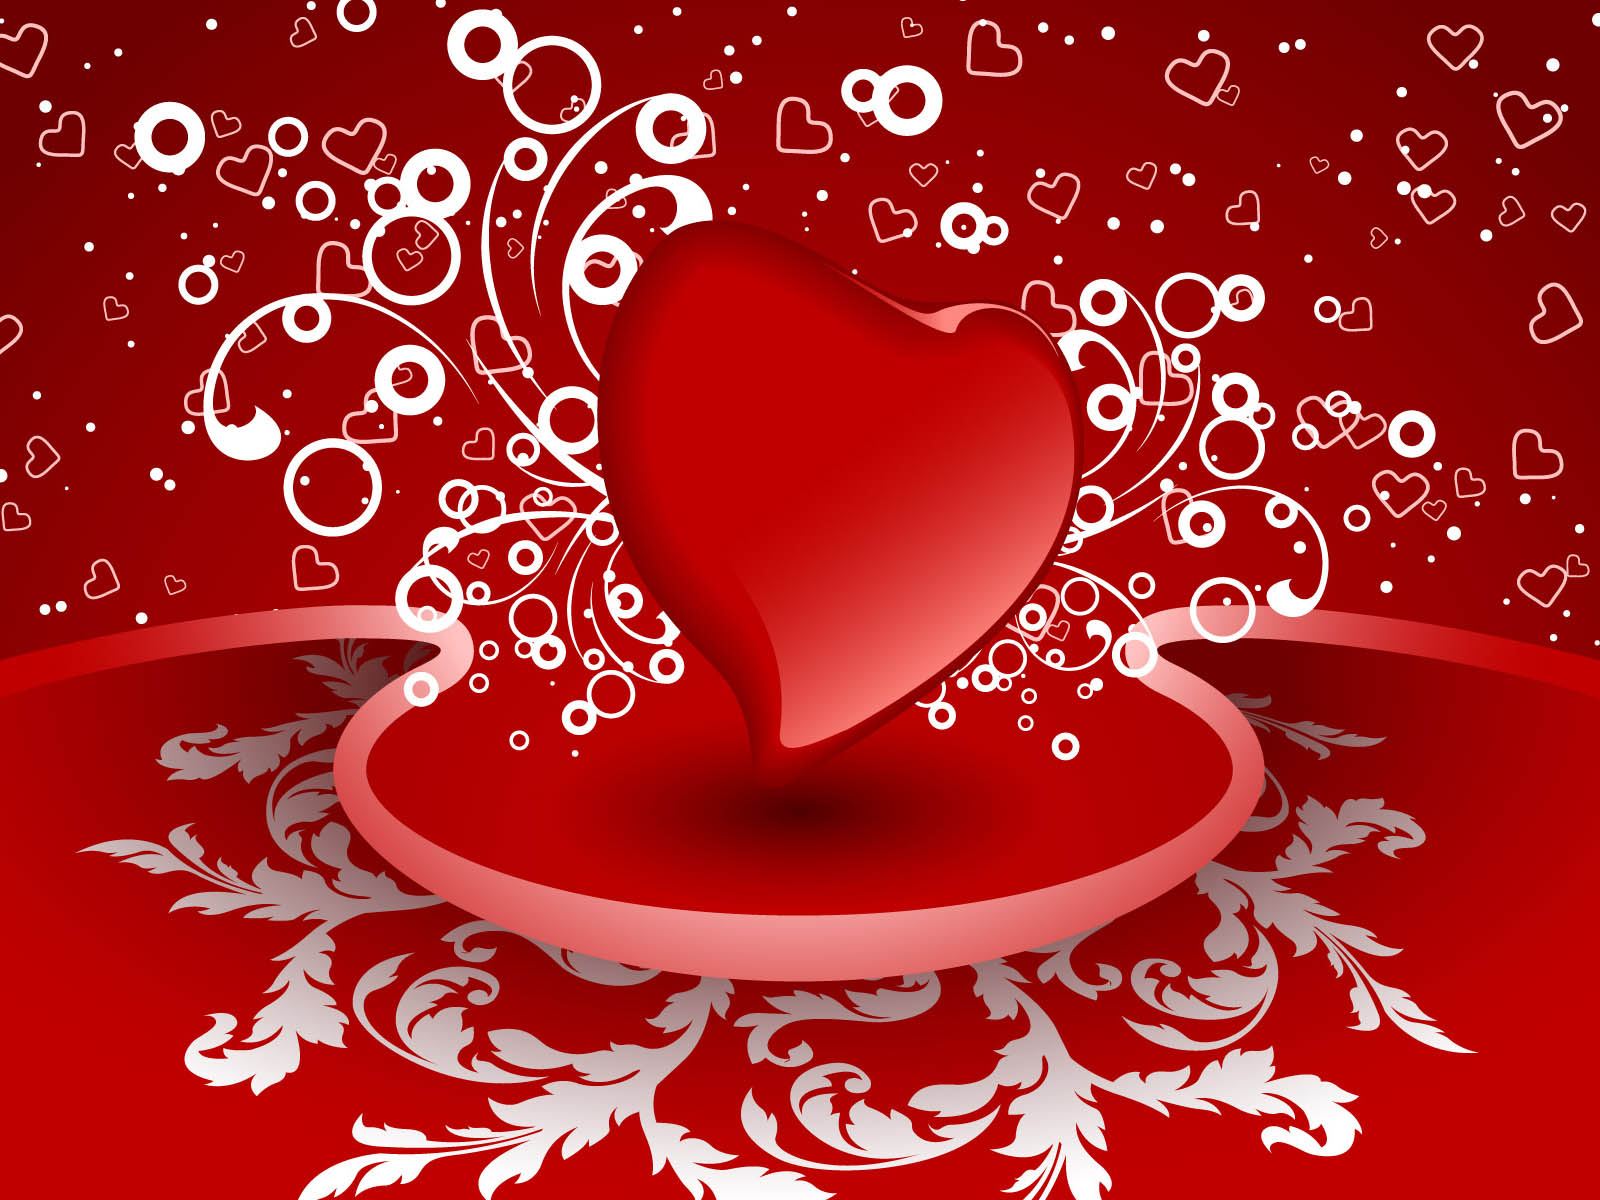 Popular Wallpaper Love Android - Love-Heart-Pictures-Wallpapers-015  Collection_297261.jpg